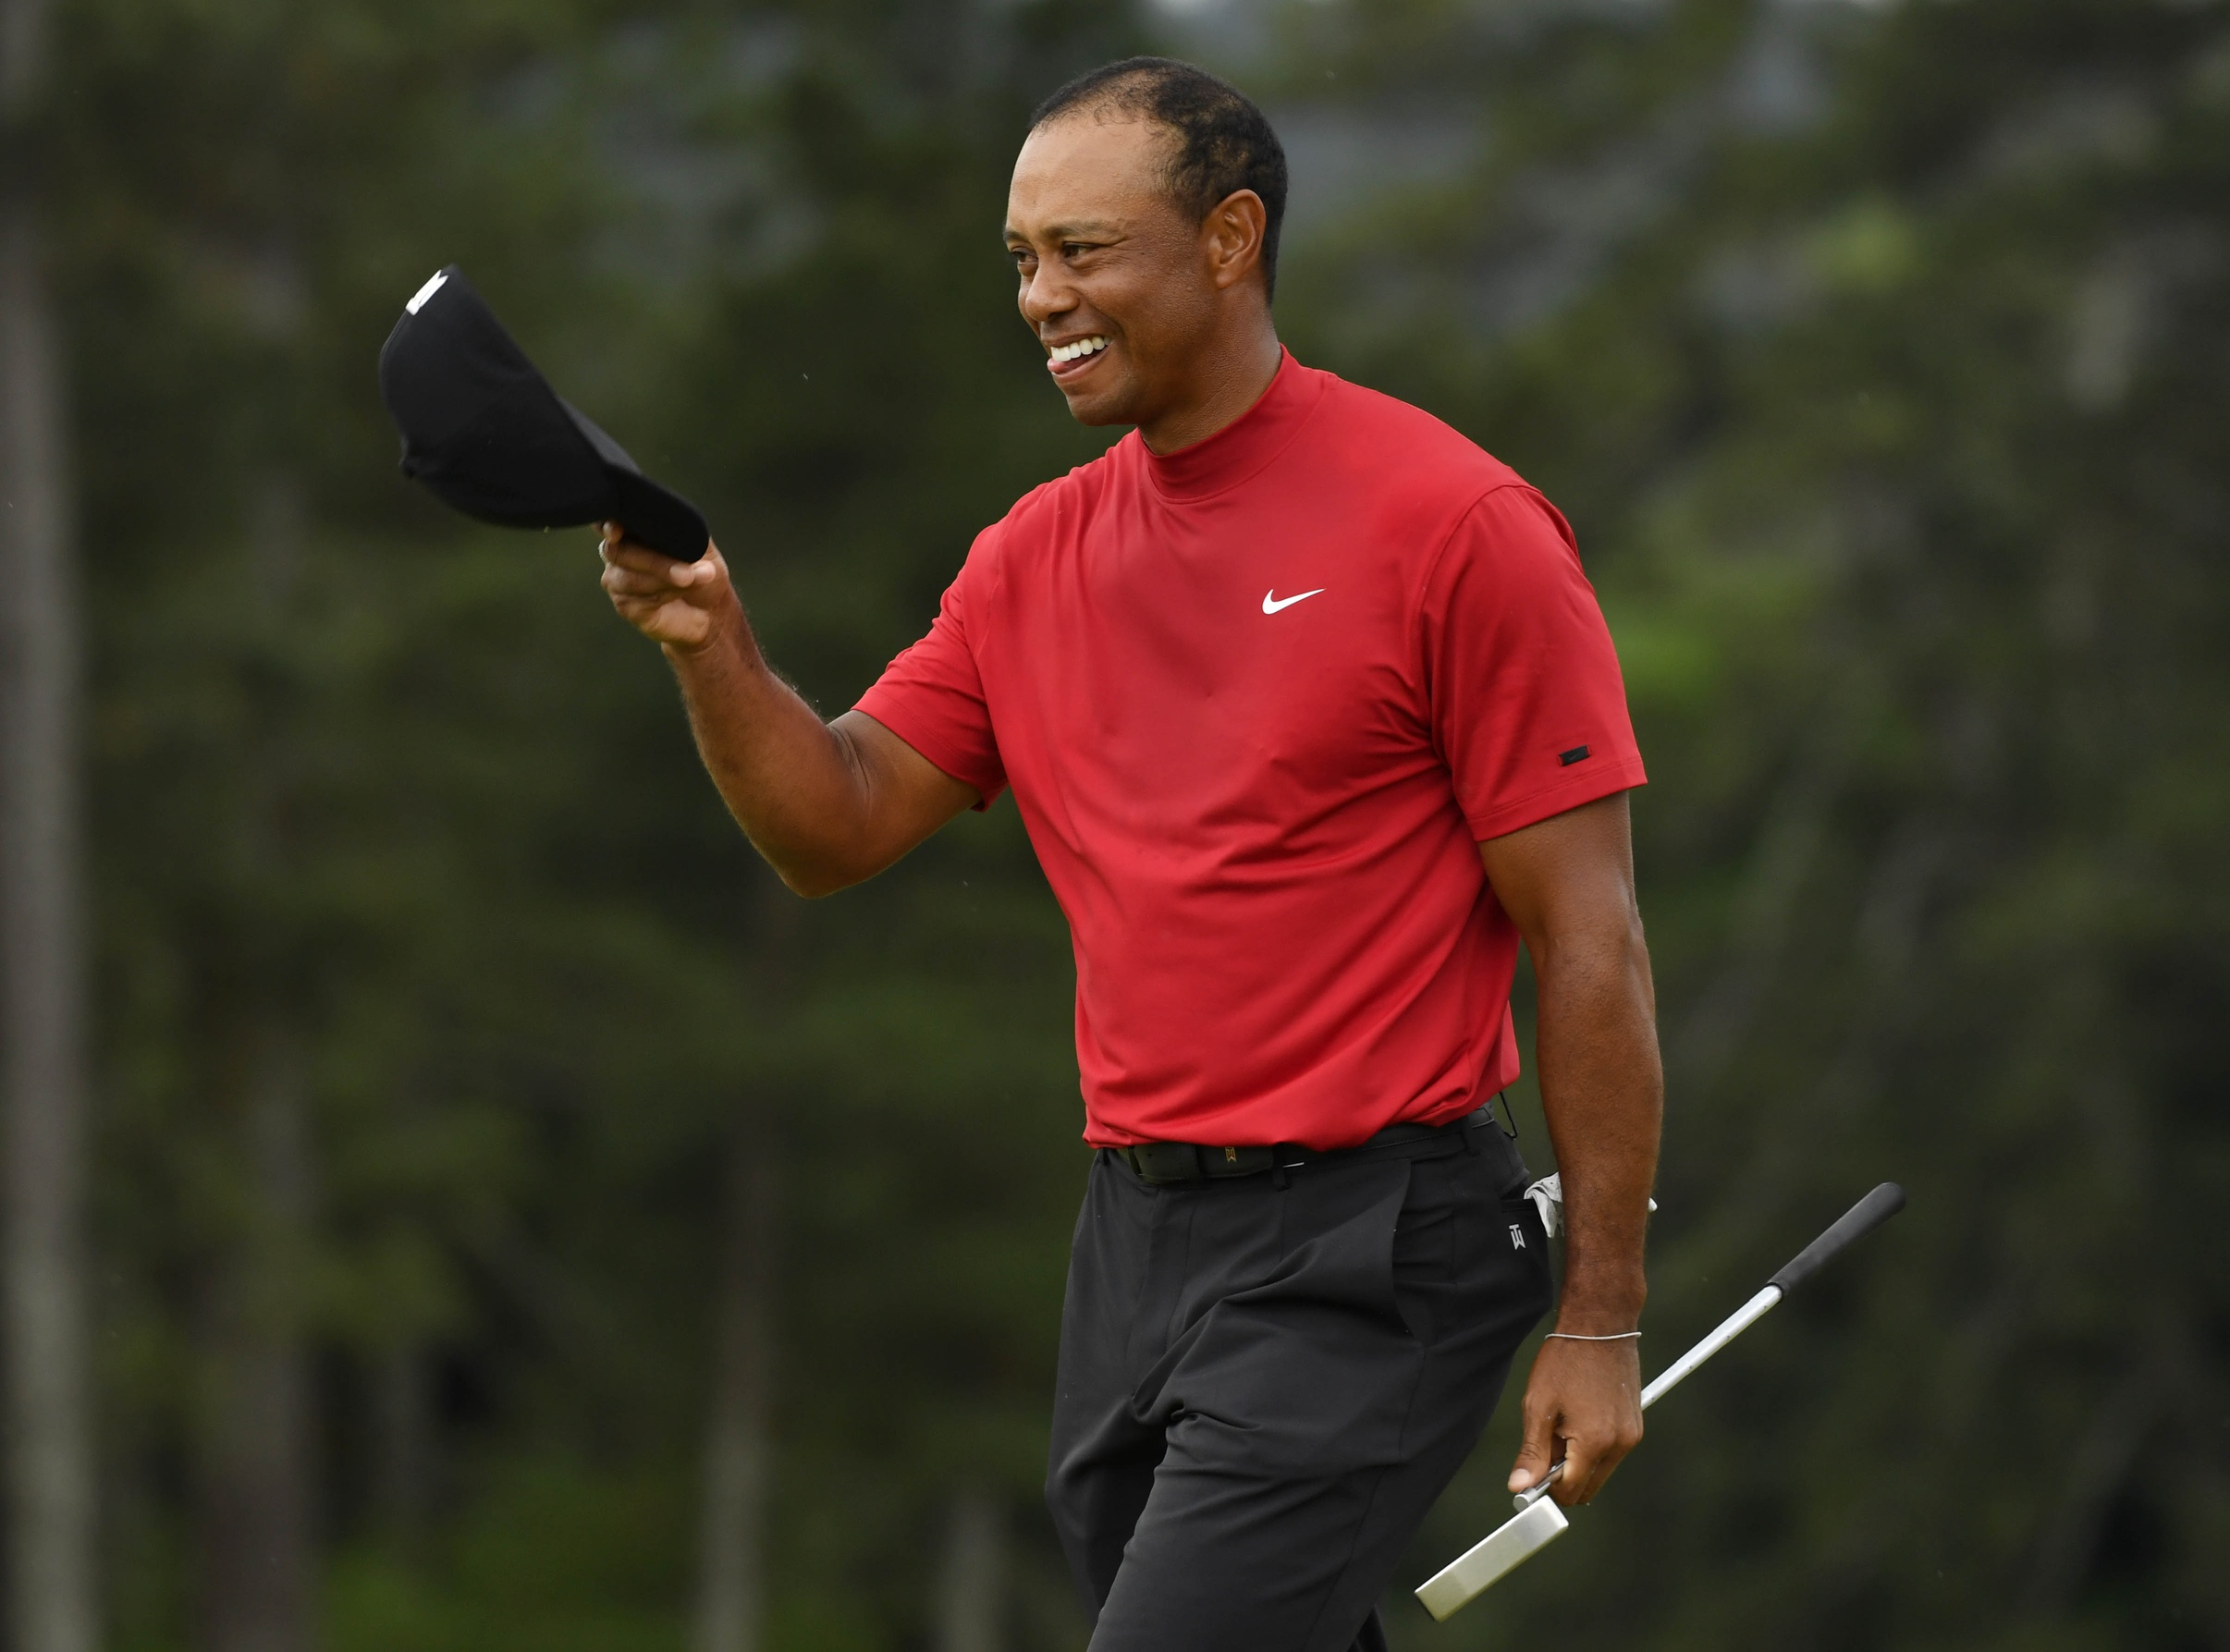 Man who won $1.2M on Tiger's Masters victory is doubling down